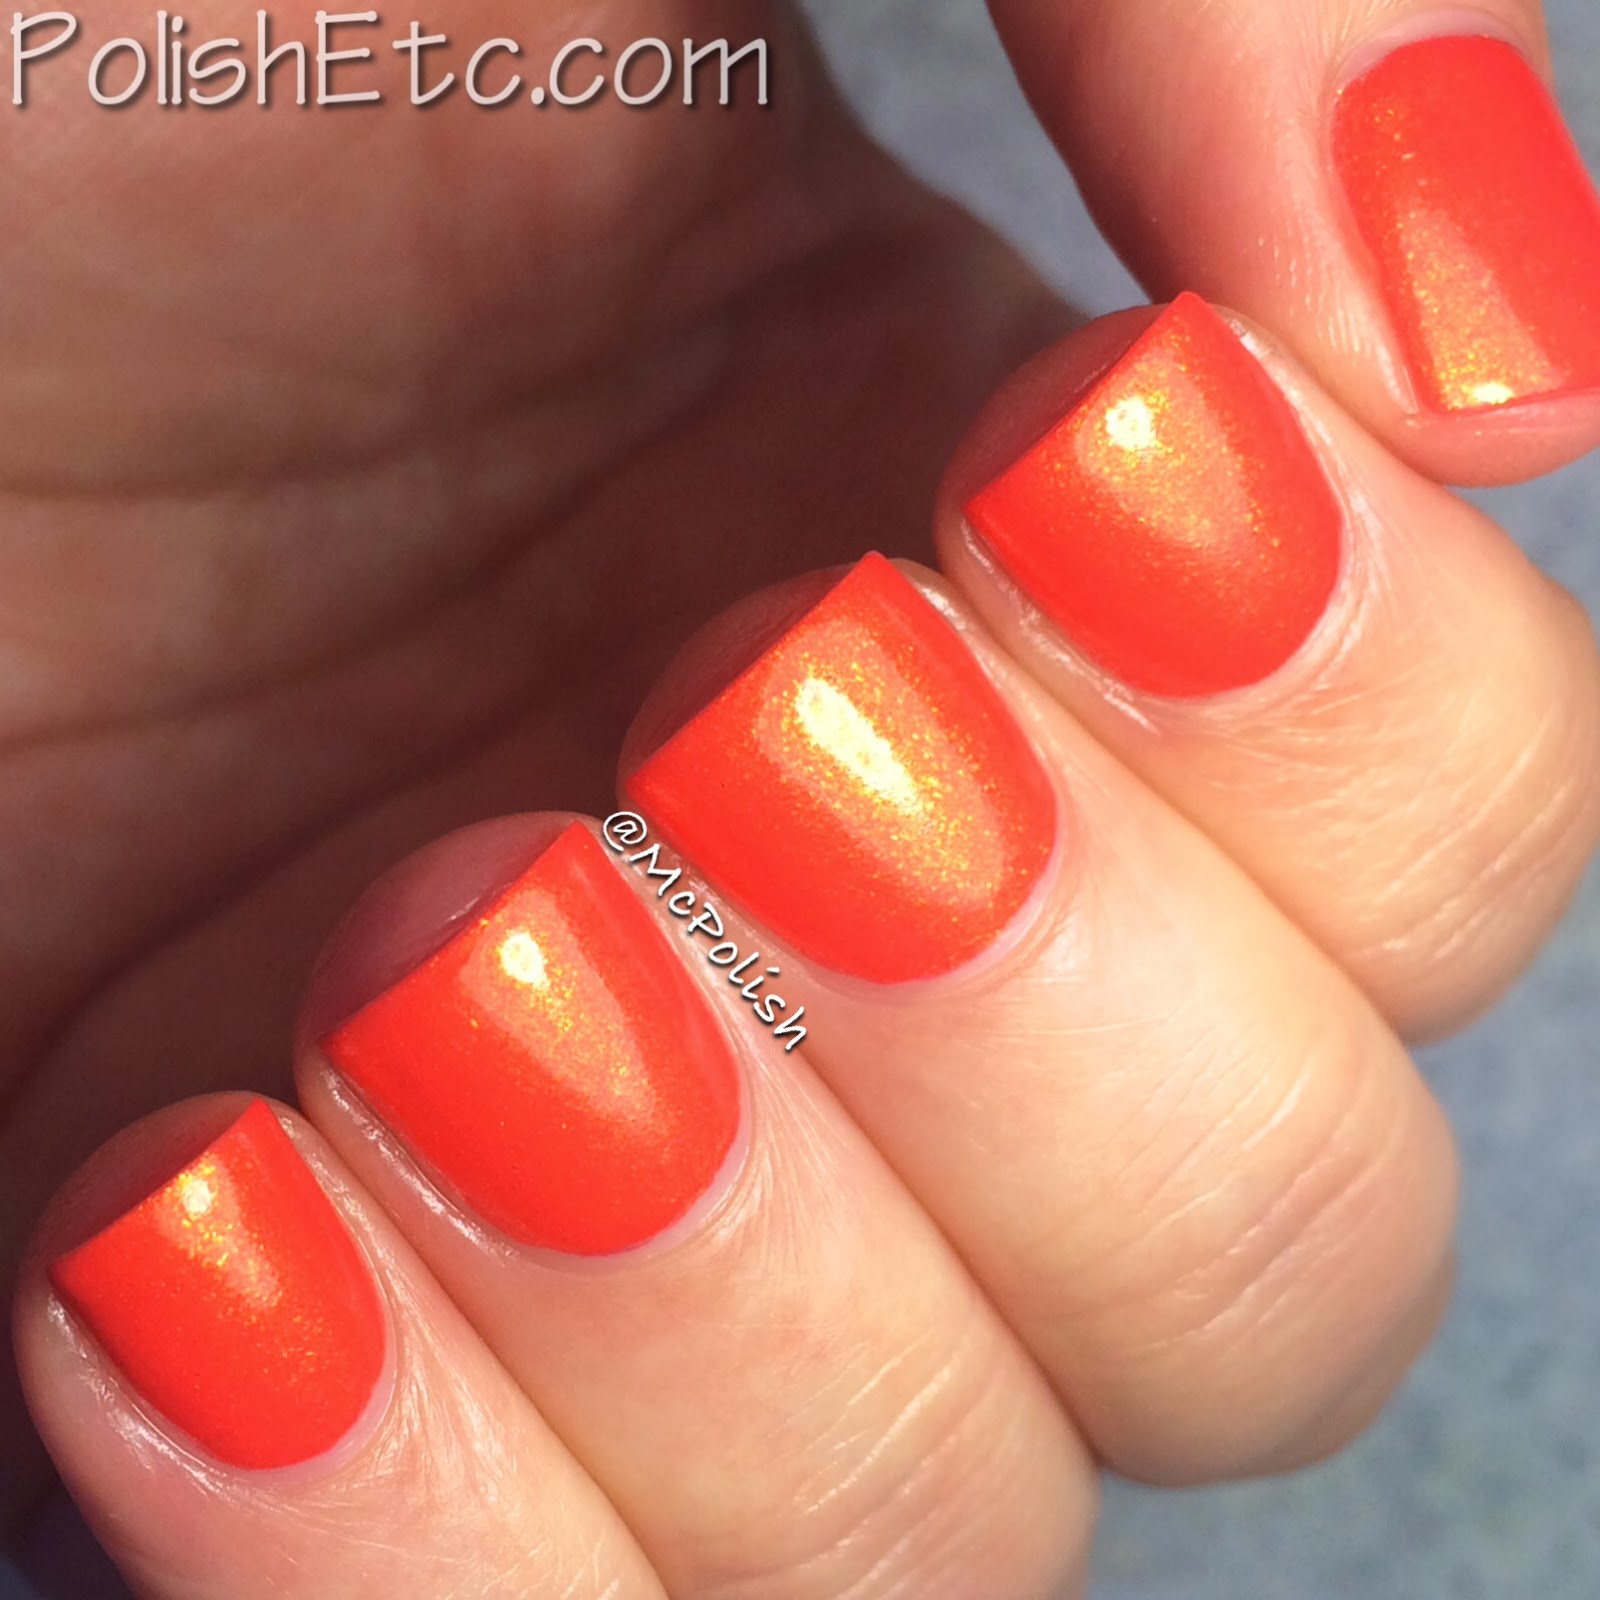 Pretty Serious - Generally Hazardous